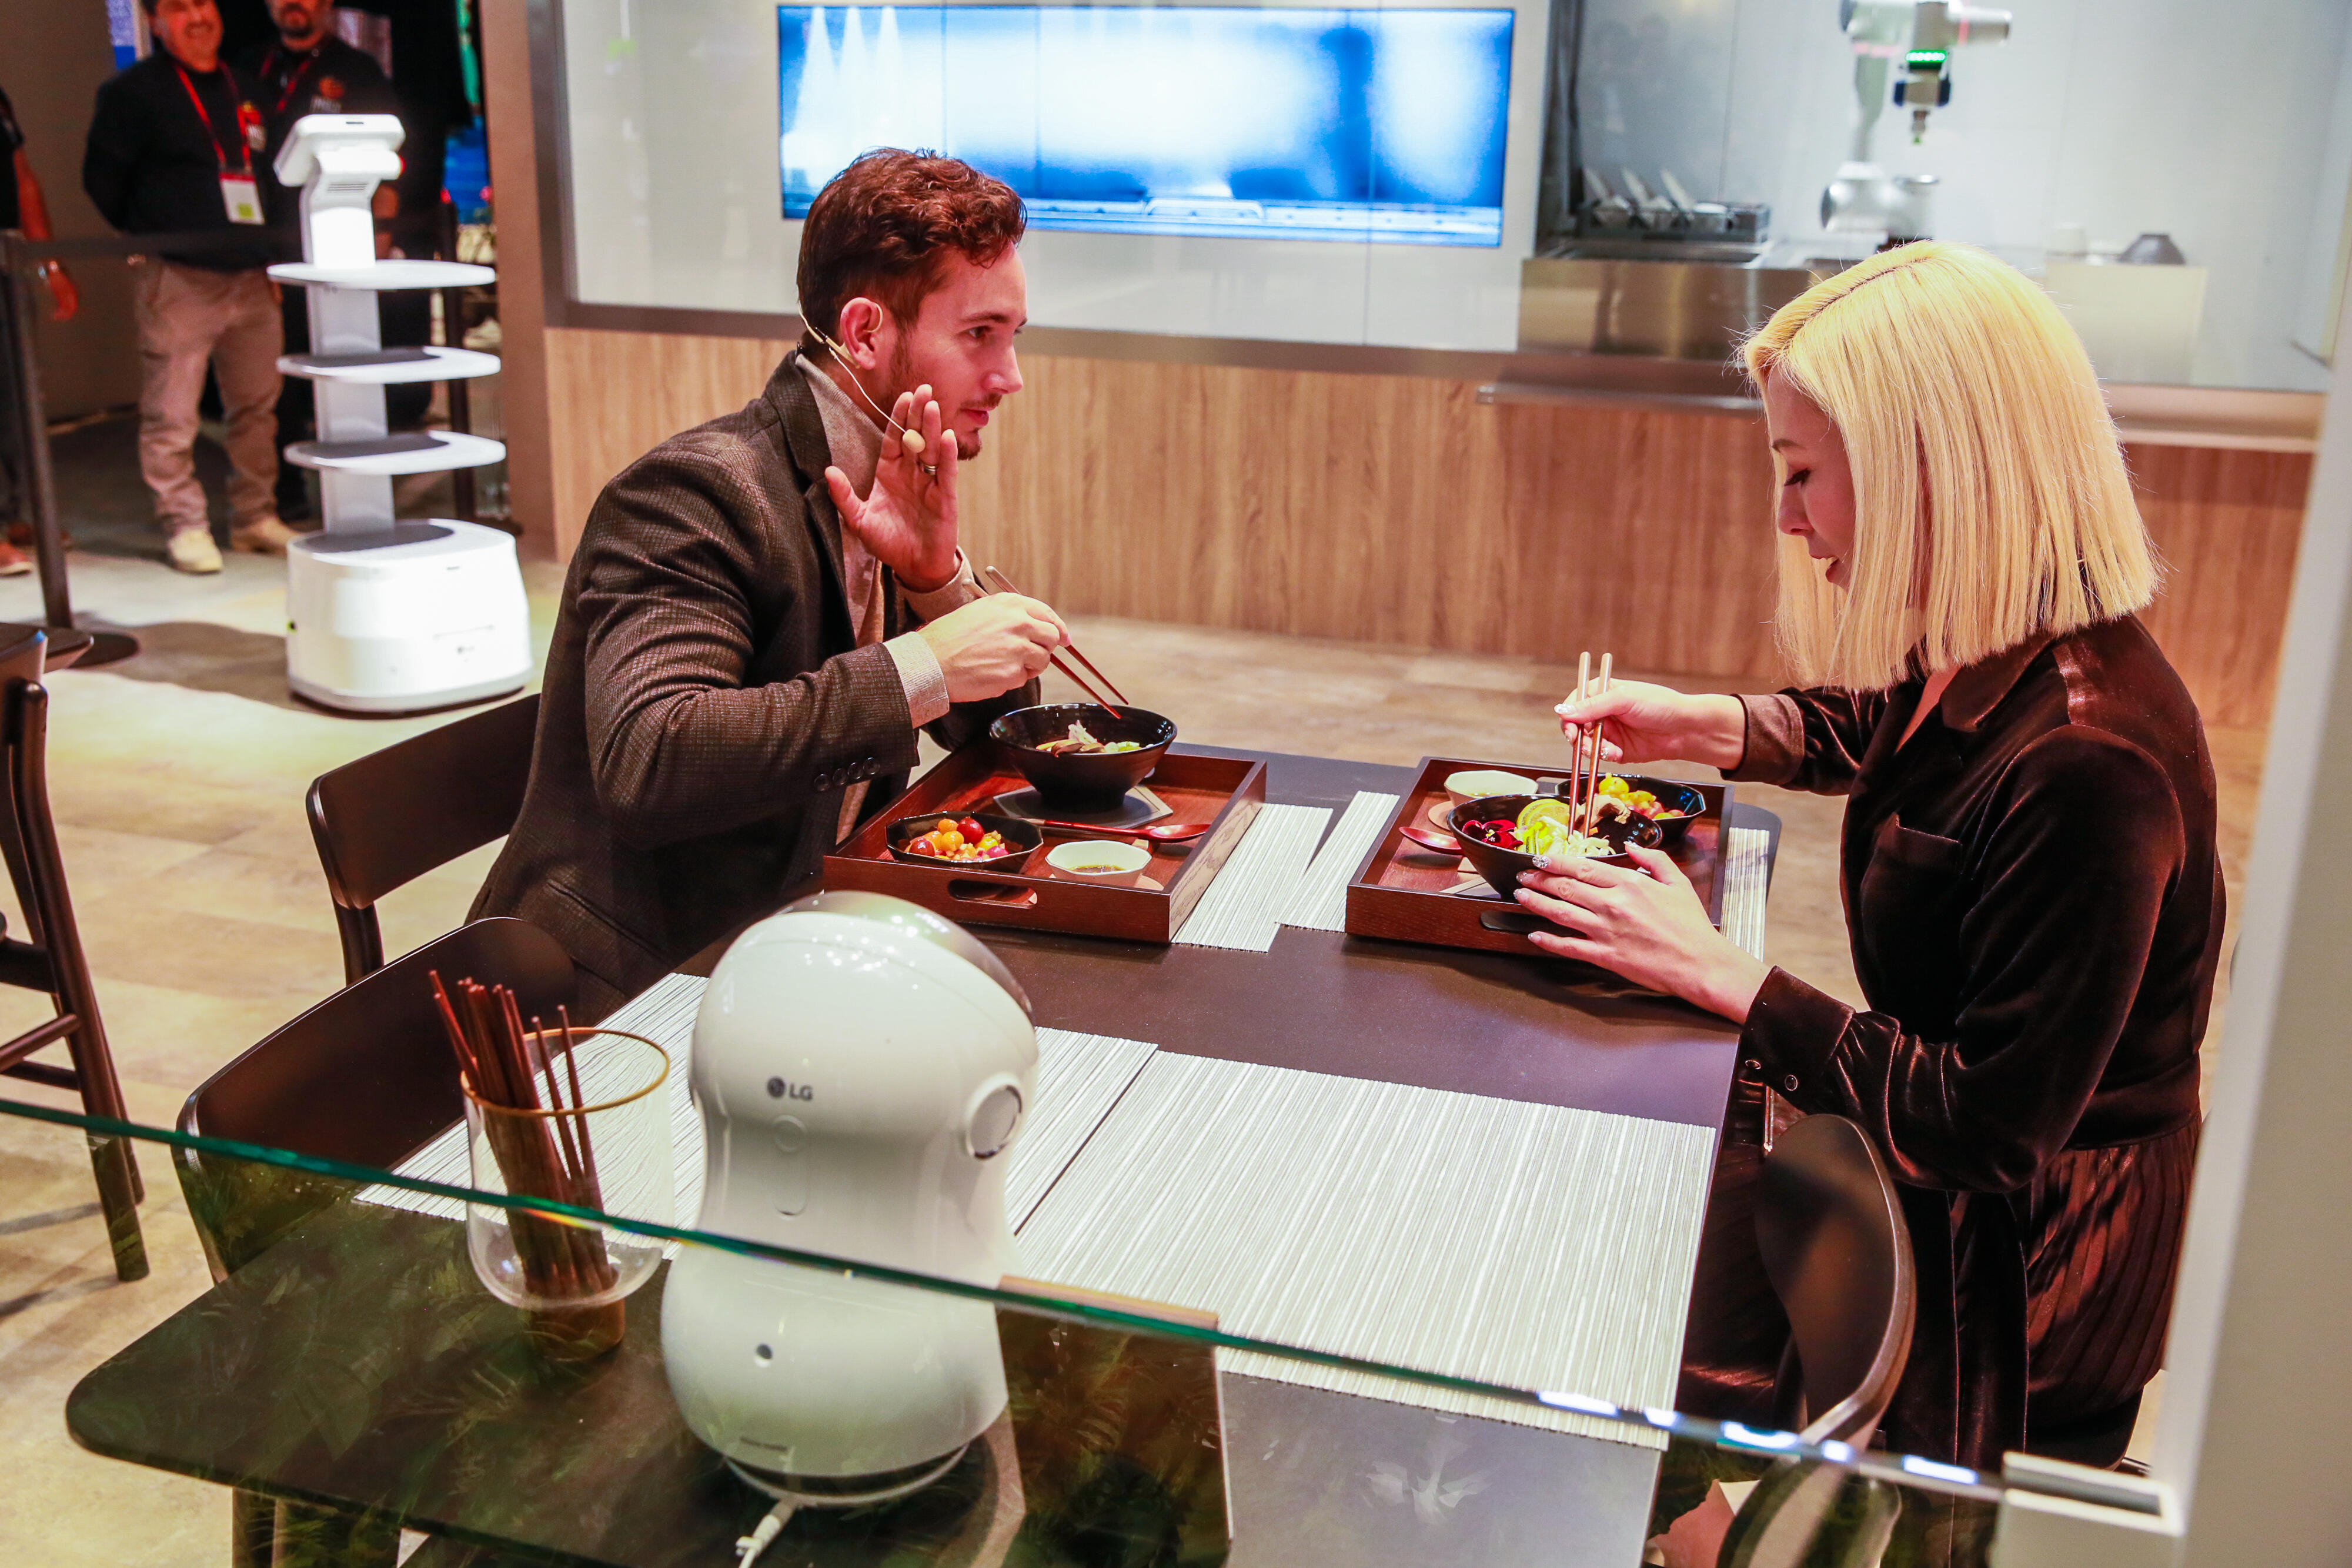 LG demos CLOi's Table: a robot-manned restaurant experience at CES 2020